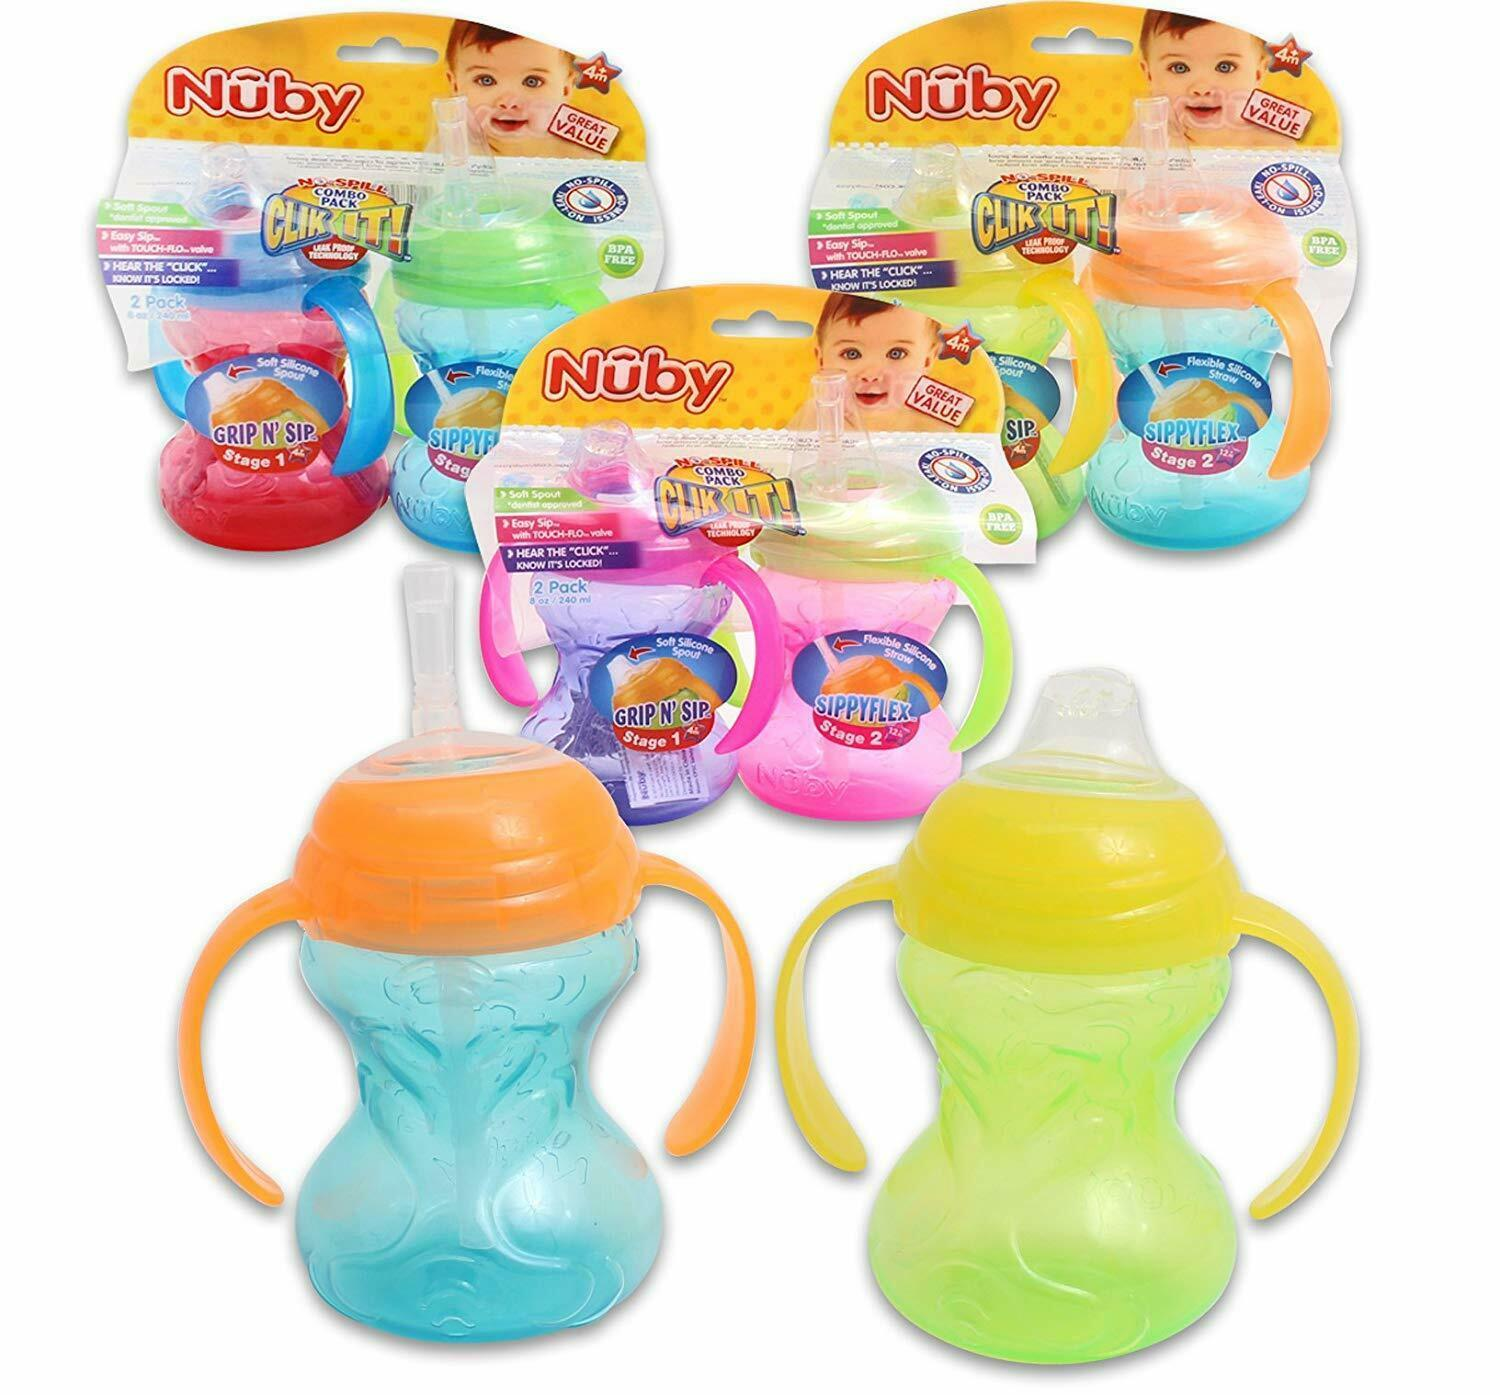 Nuby No-Spill Combo Pack Sippy Cups Flex Straw & Toddler Soft Spout Colors  Vary - $8.99